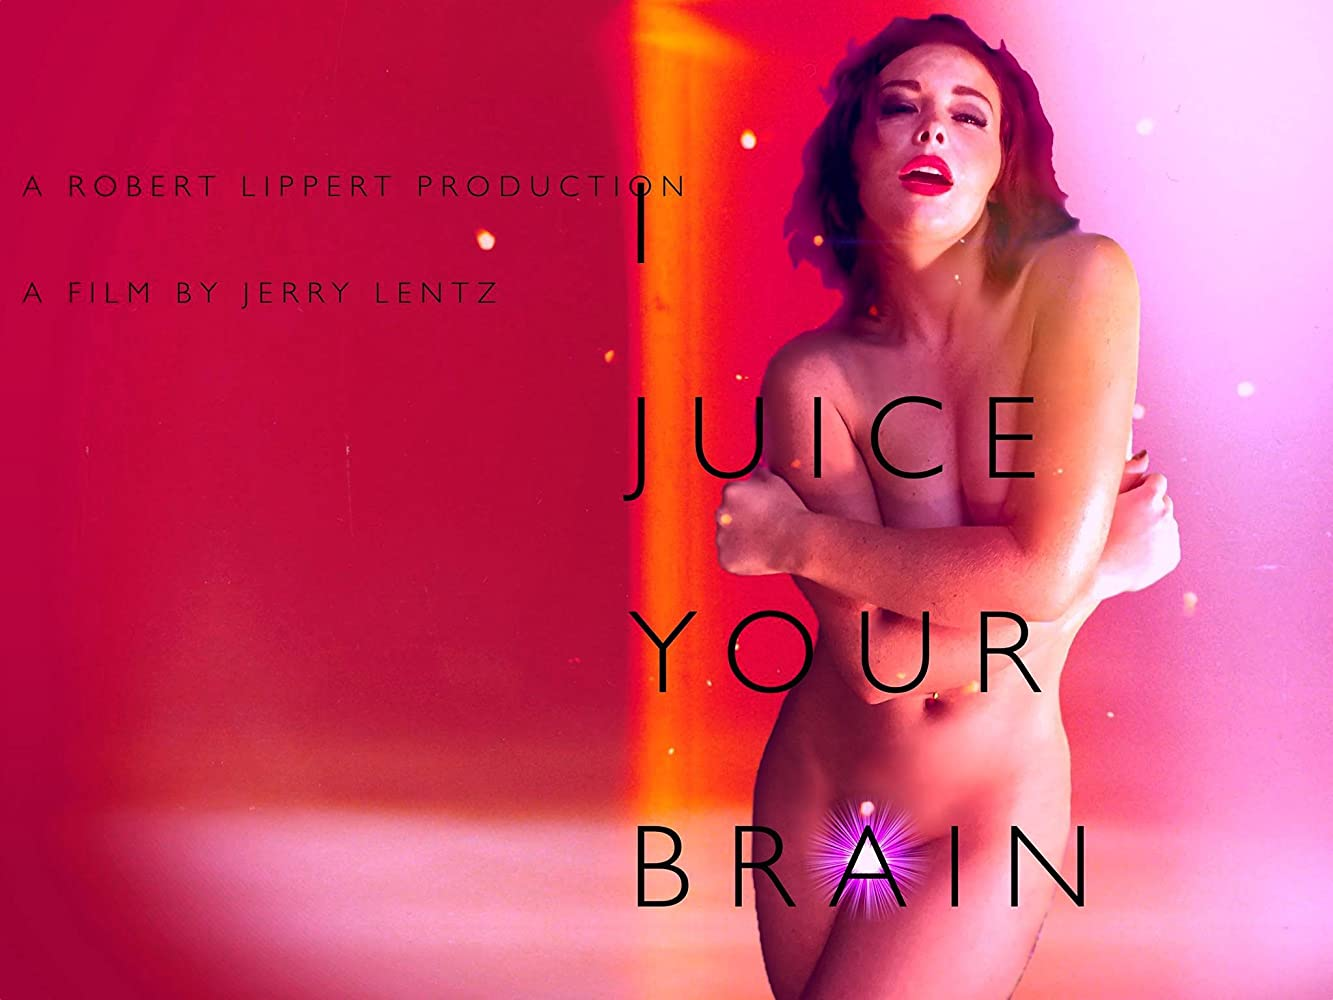 I Juice Your Brain (2017)